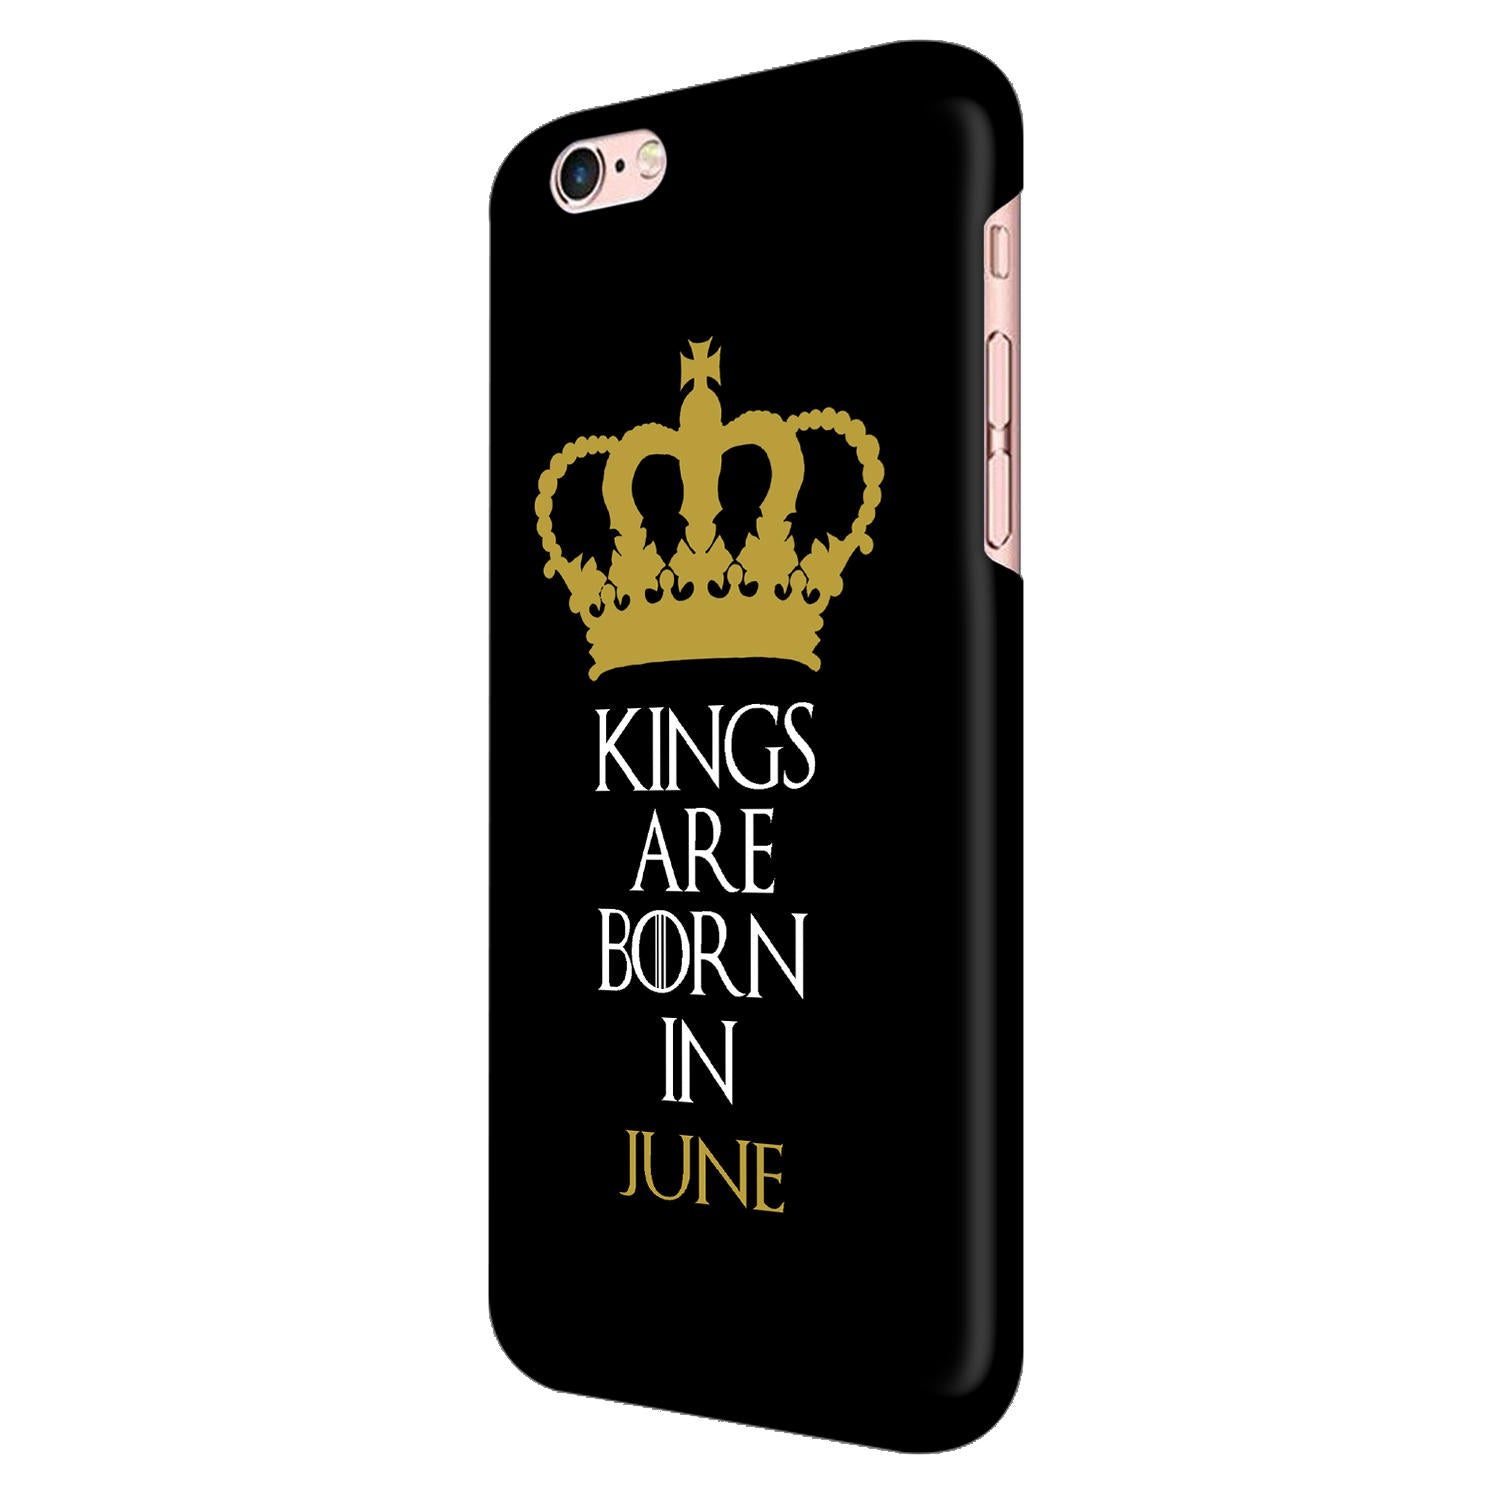 Kings June iPhone 6 Mobile Cover Case - MADANYU